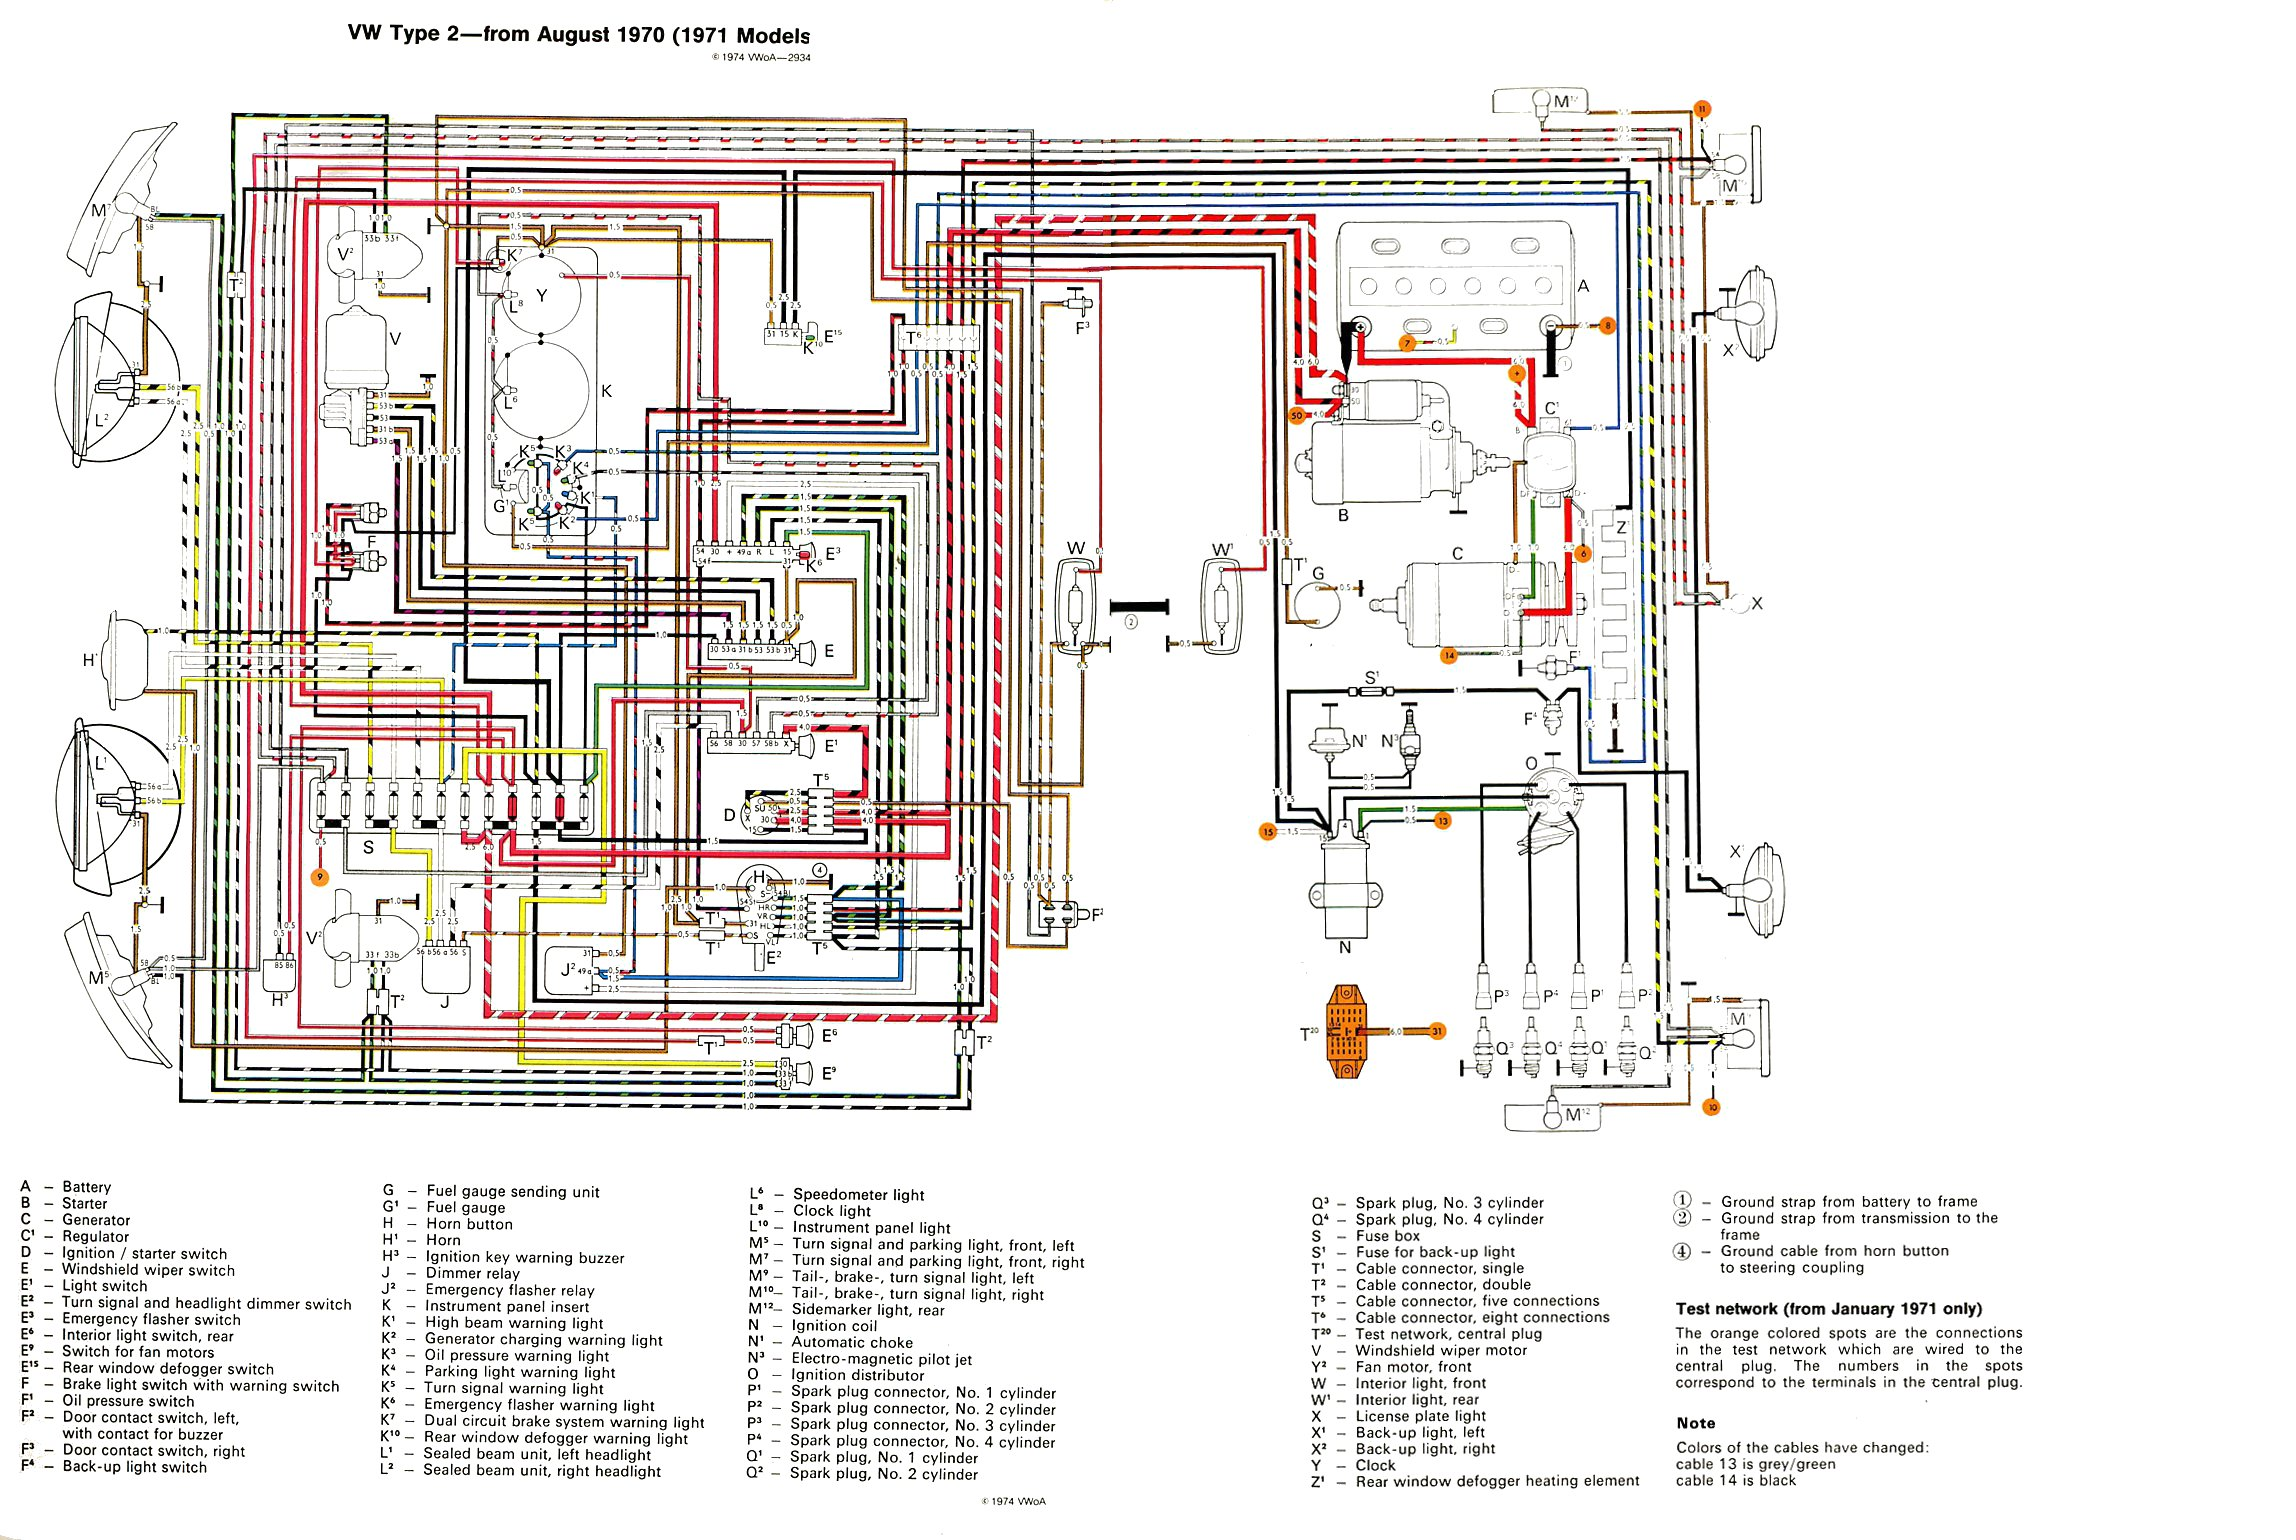 thesamba com type 2 wiring diagrams rh thesamba com 1971 vw bus wiring diagram pdf 1962 VW Wiring Diagram